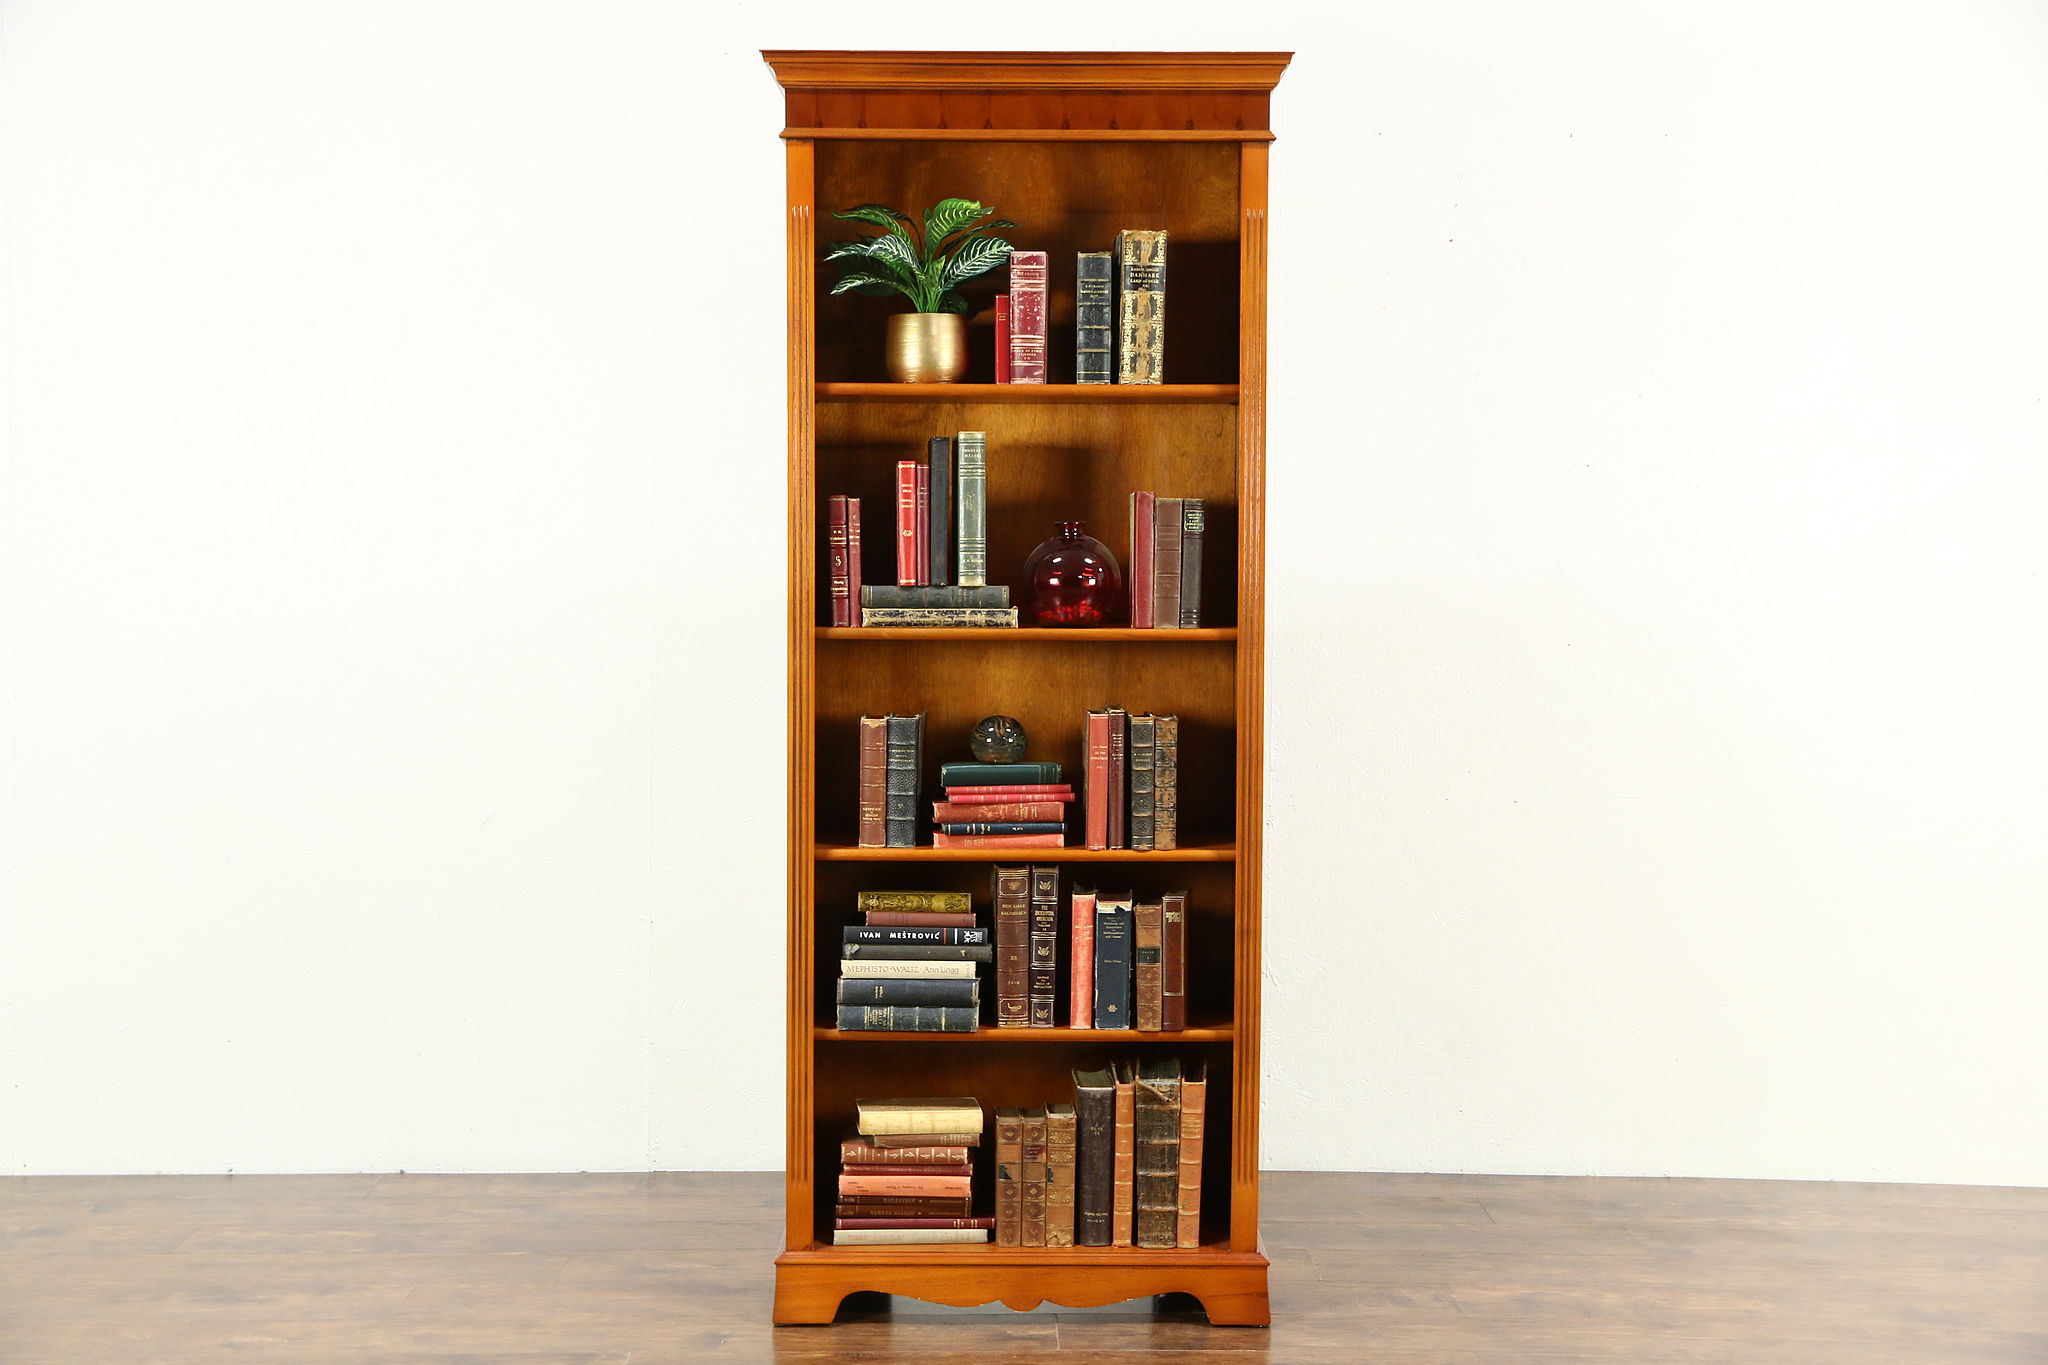 Ordinaire Library Yew Wood Bookcase, Adjustable Shelves, Richwoods Of London 1995